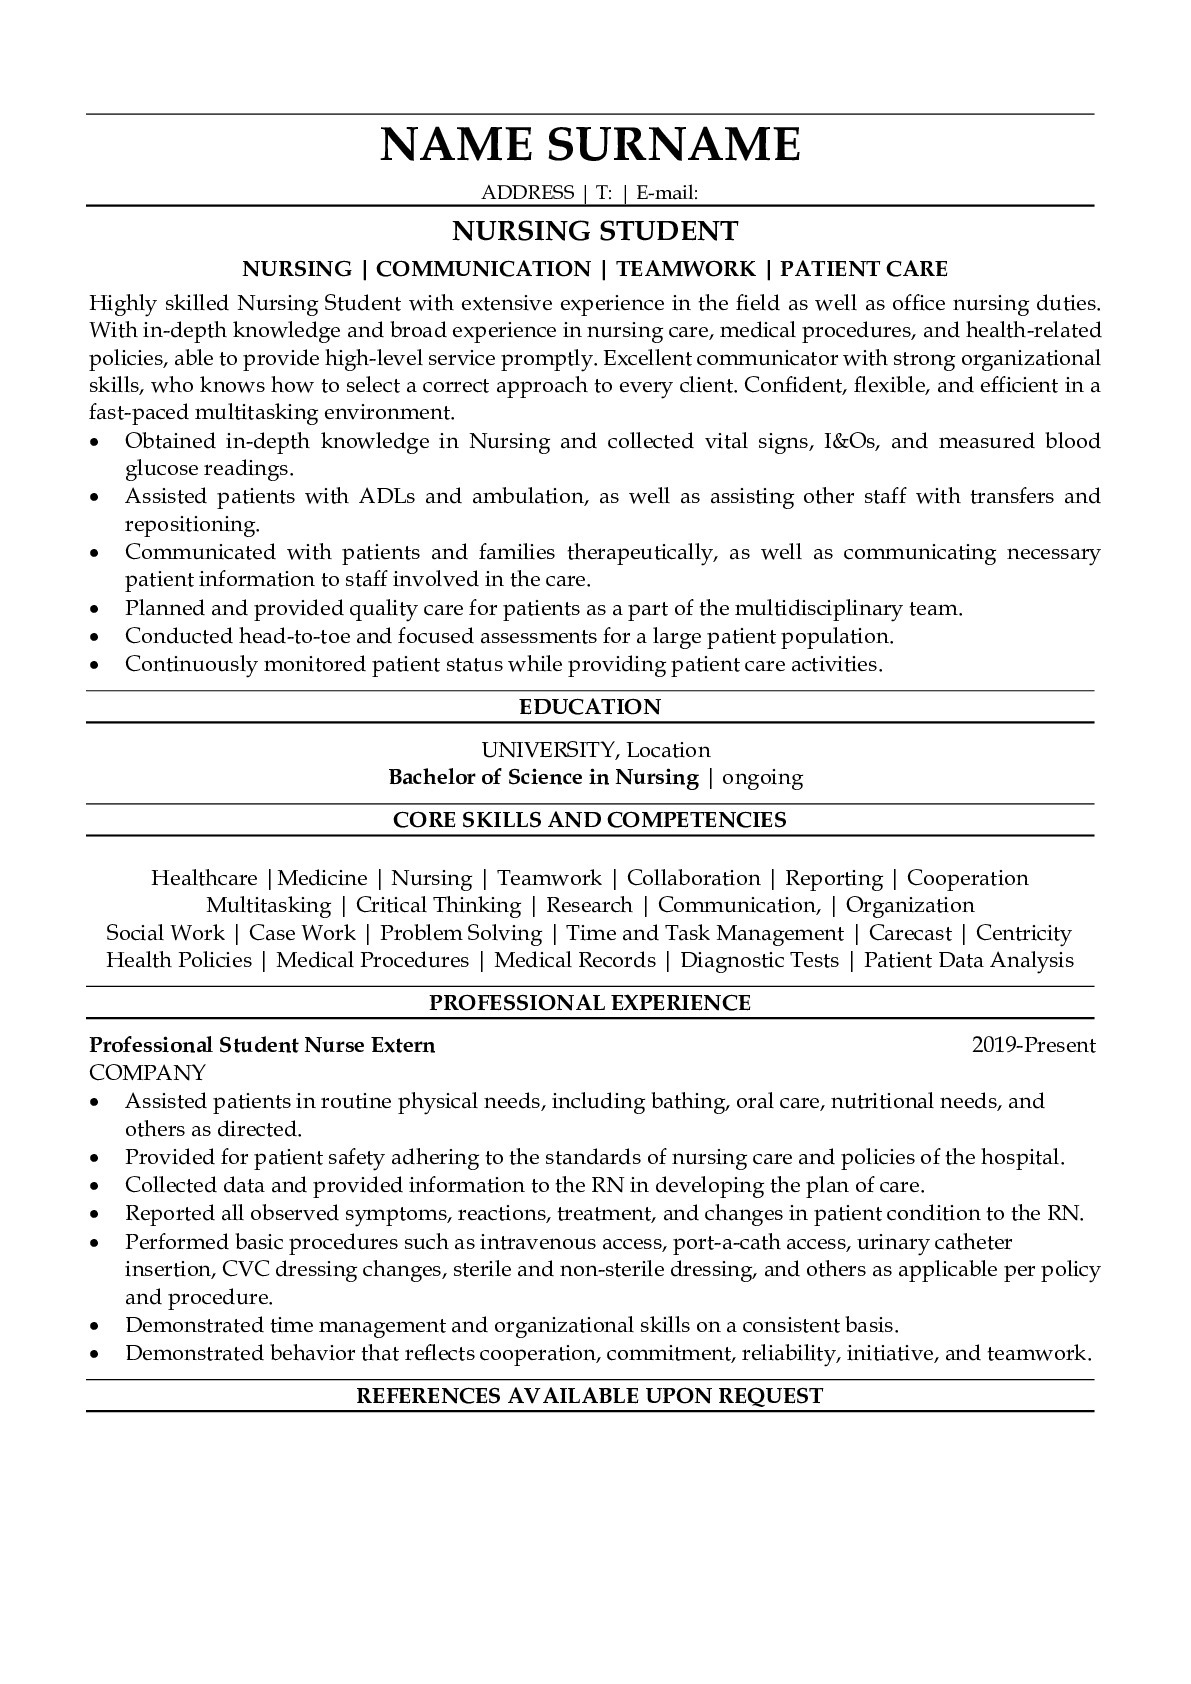 Resume Example for Nursing Student